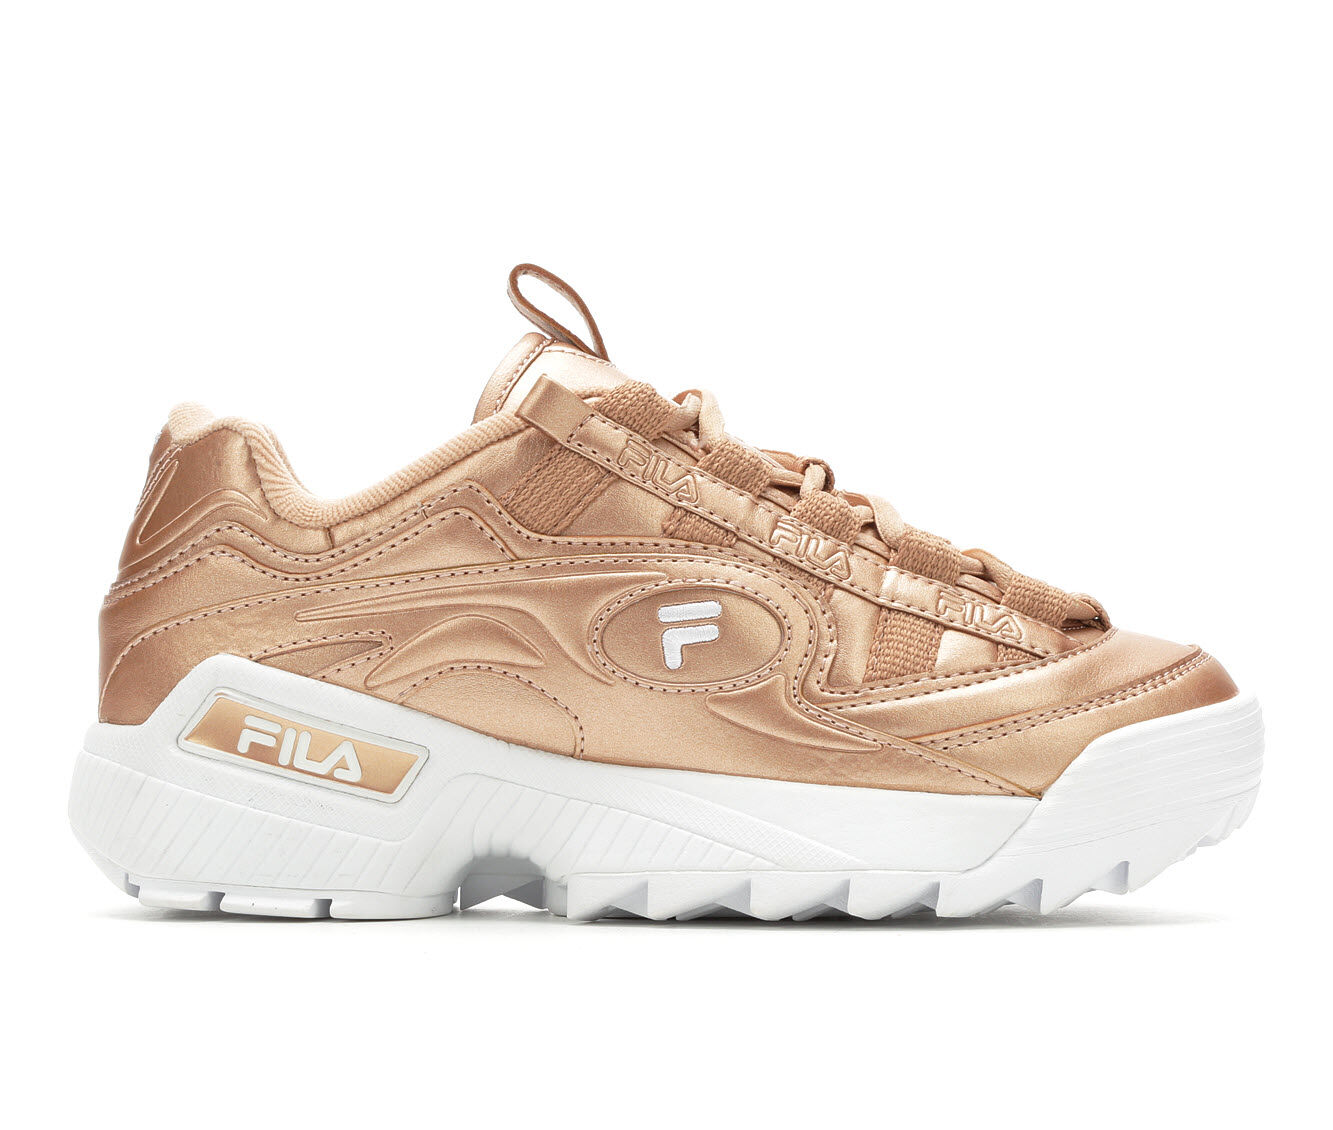 Women's Fila D-Formation Sneakers Rose Gold/White